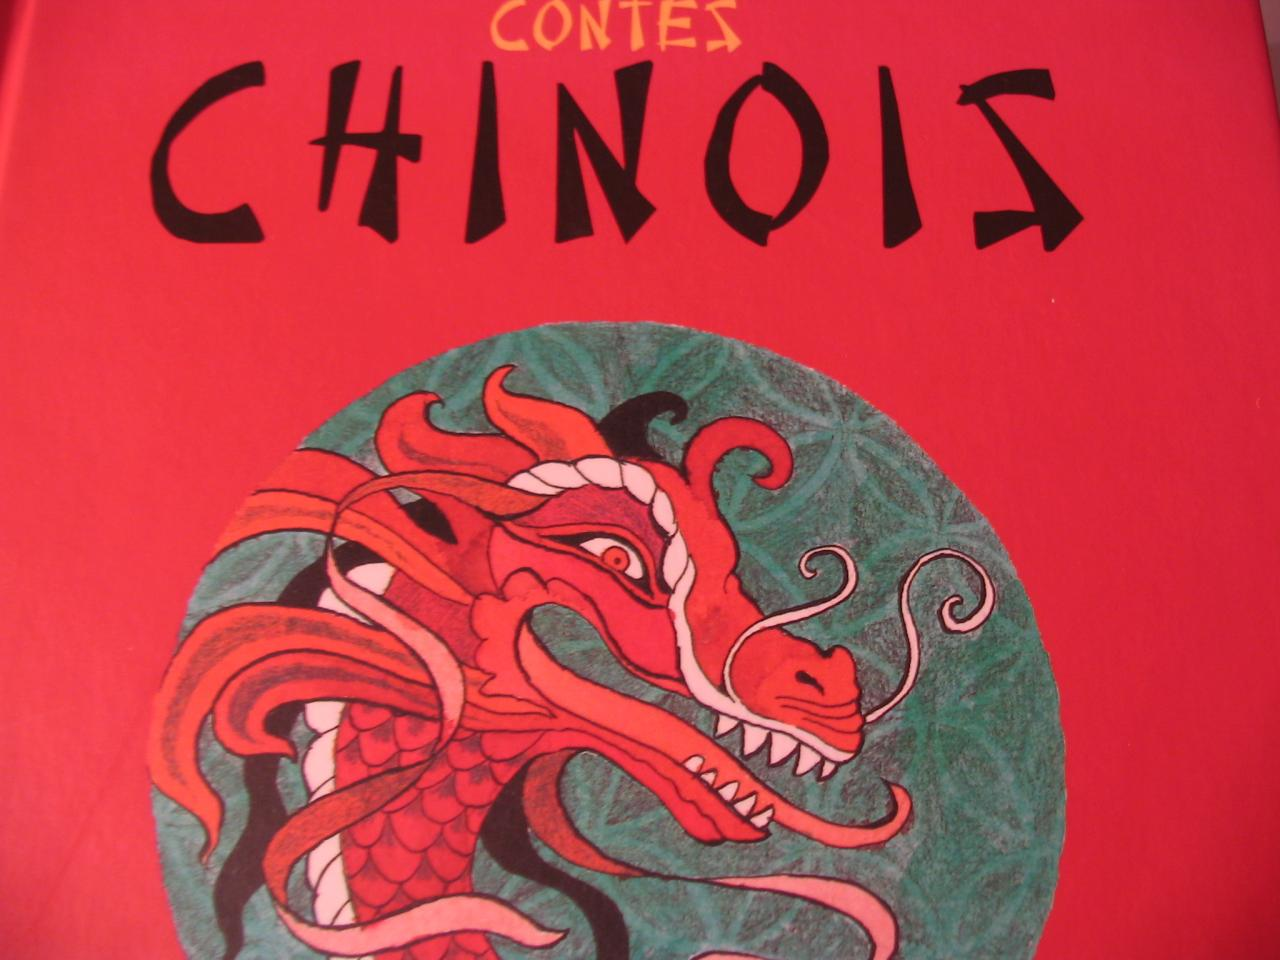 Contes chinois